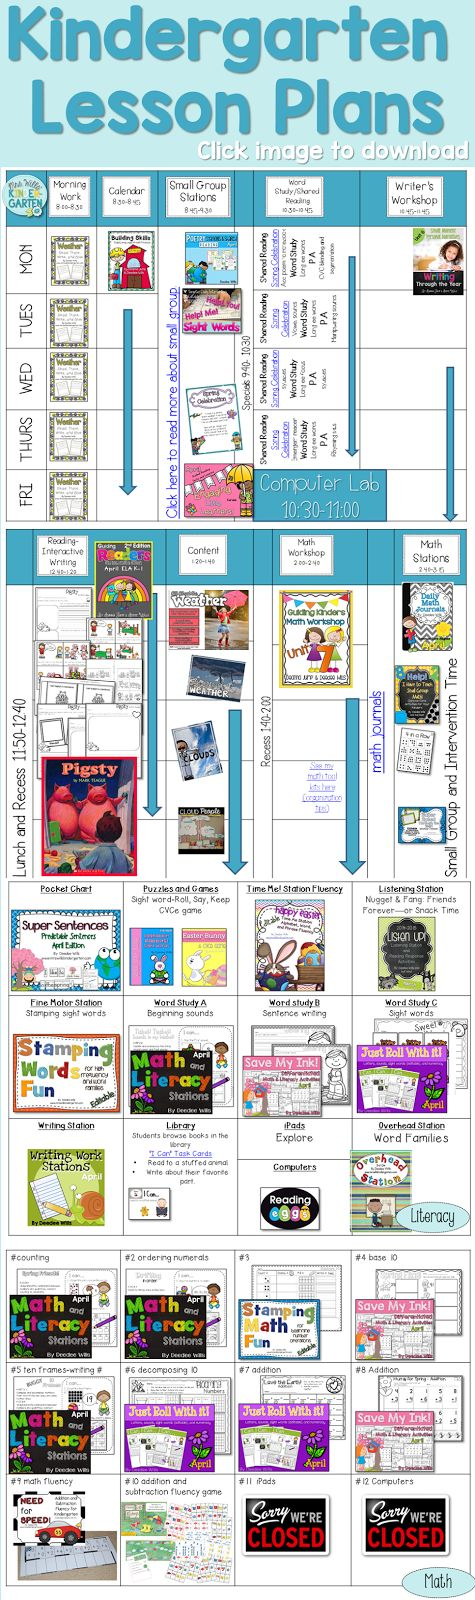 Mrs. Wills Kindergarten: Kindergarten Lesson Plans! Yippee for Spring!